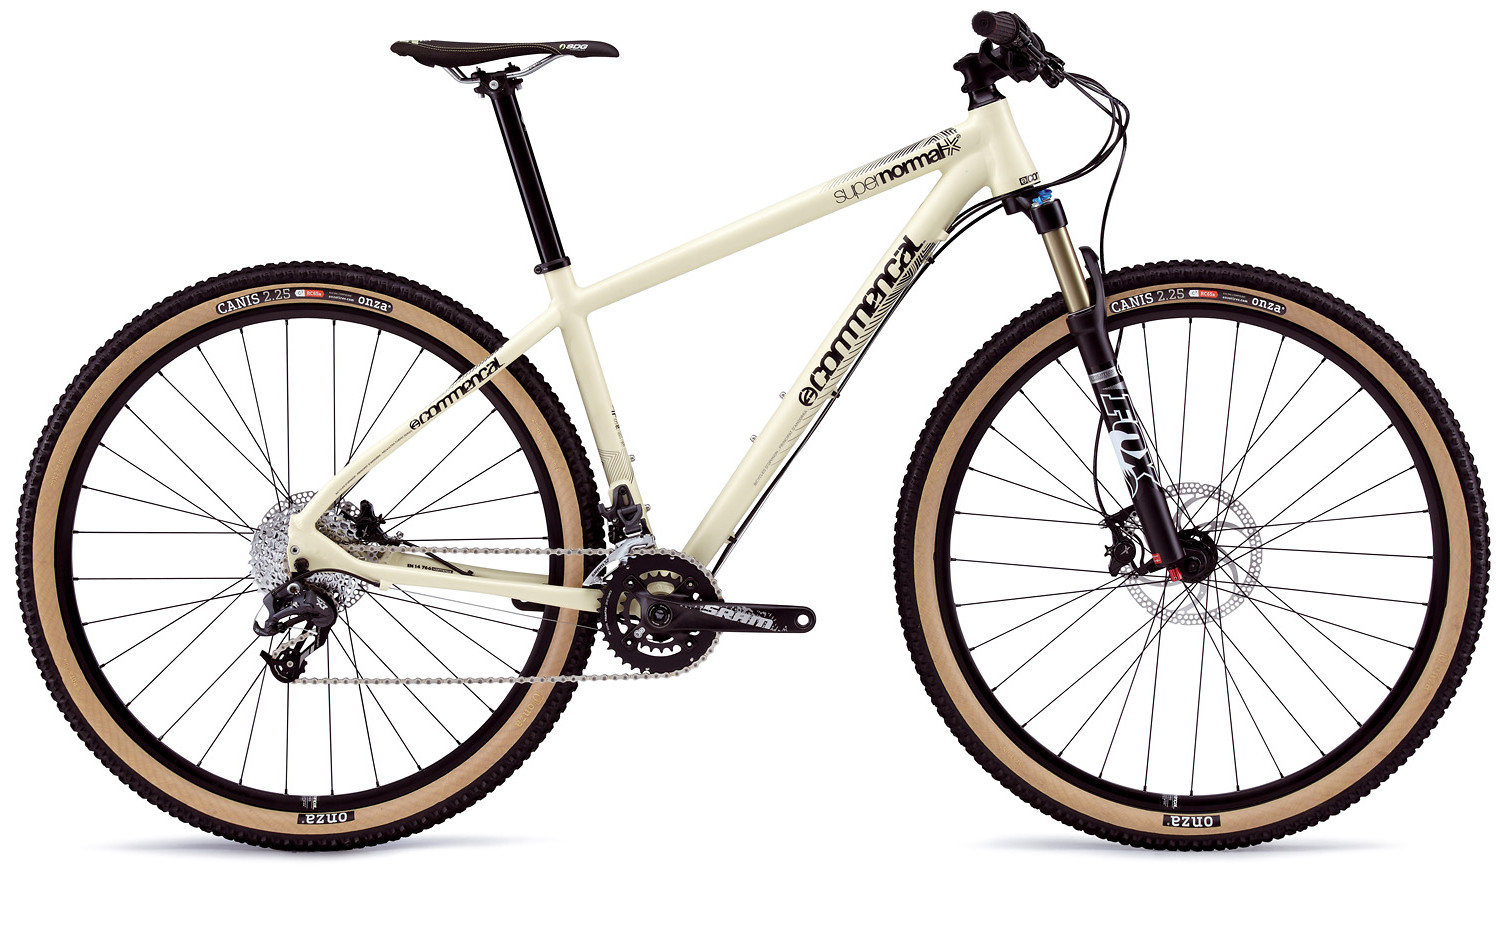 2013 Commencal Supernormal 29  SUPERNORMAL_29_013